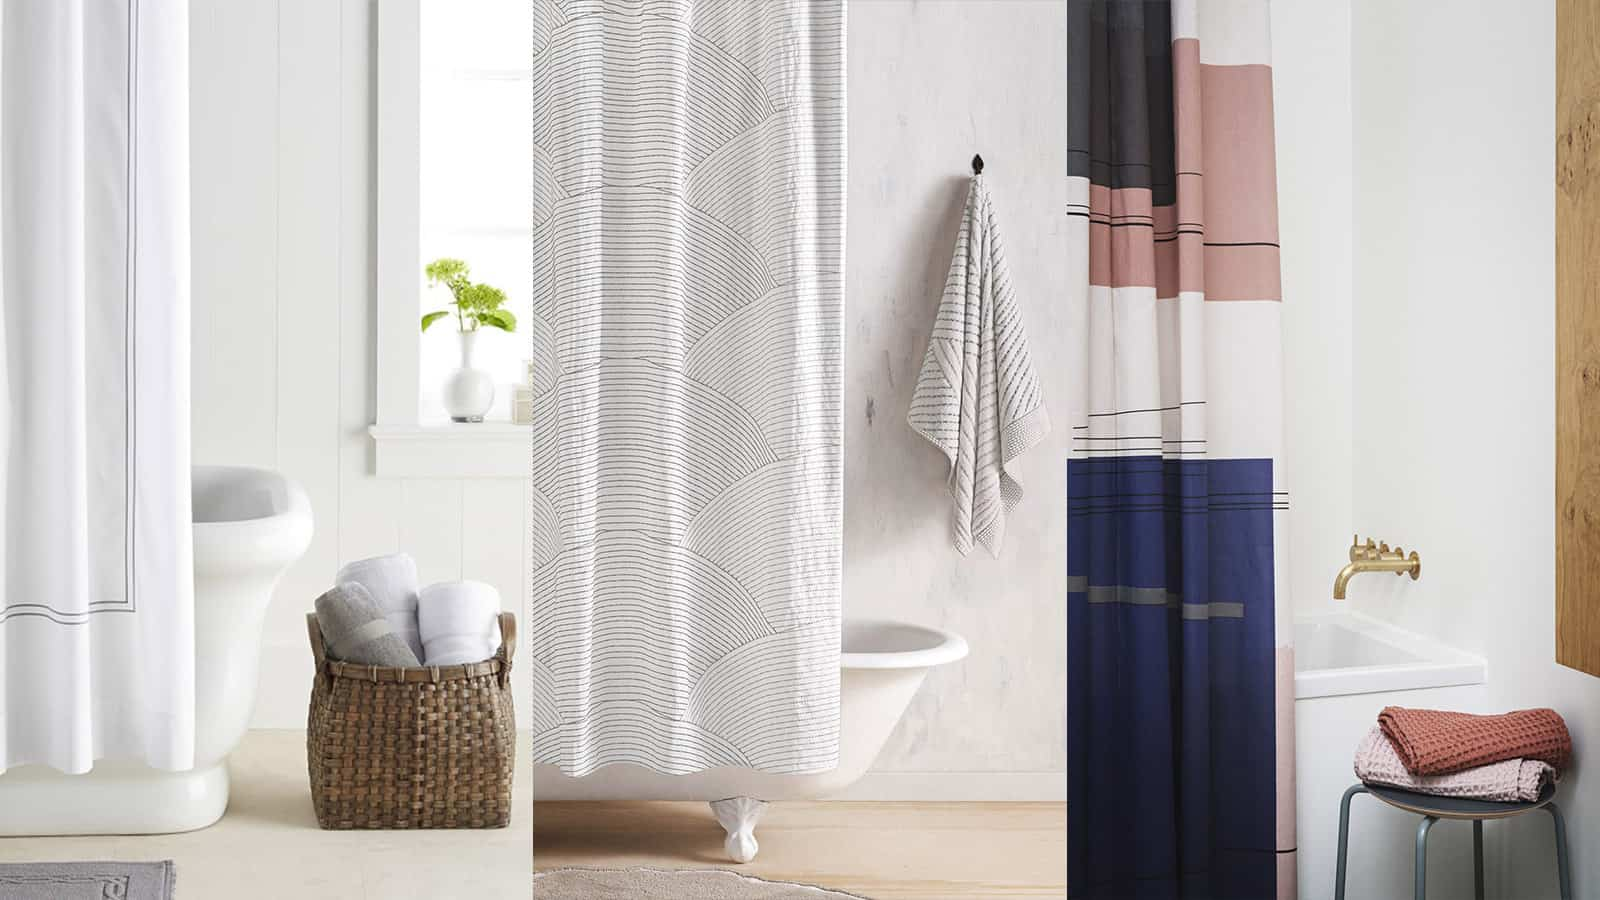 How To Clean Shower Curtains Correctly